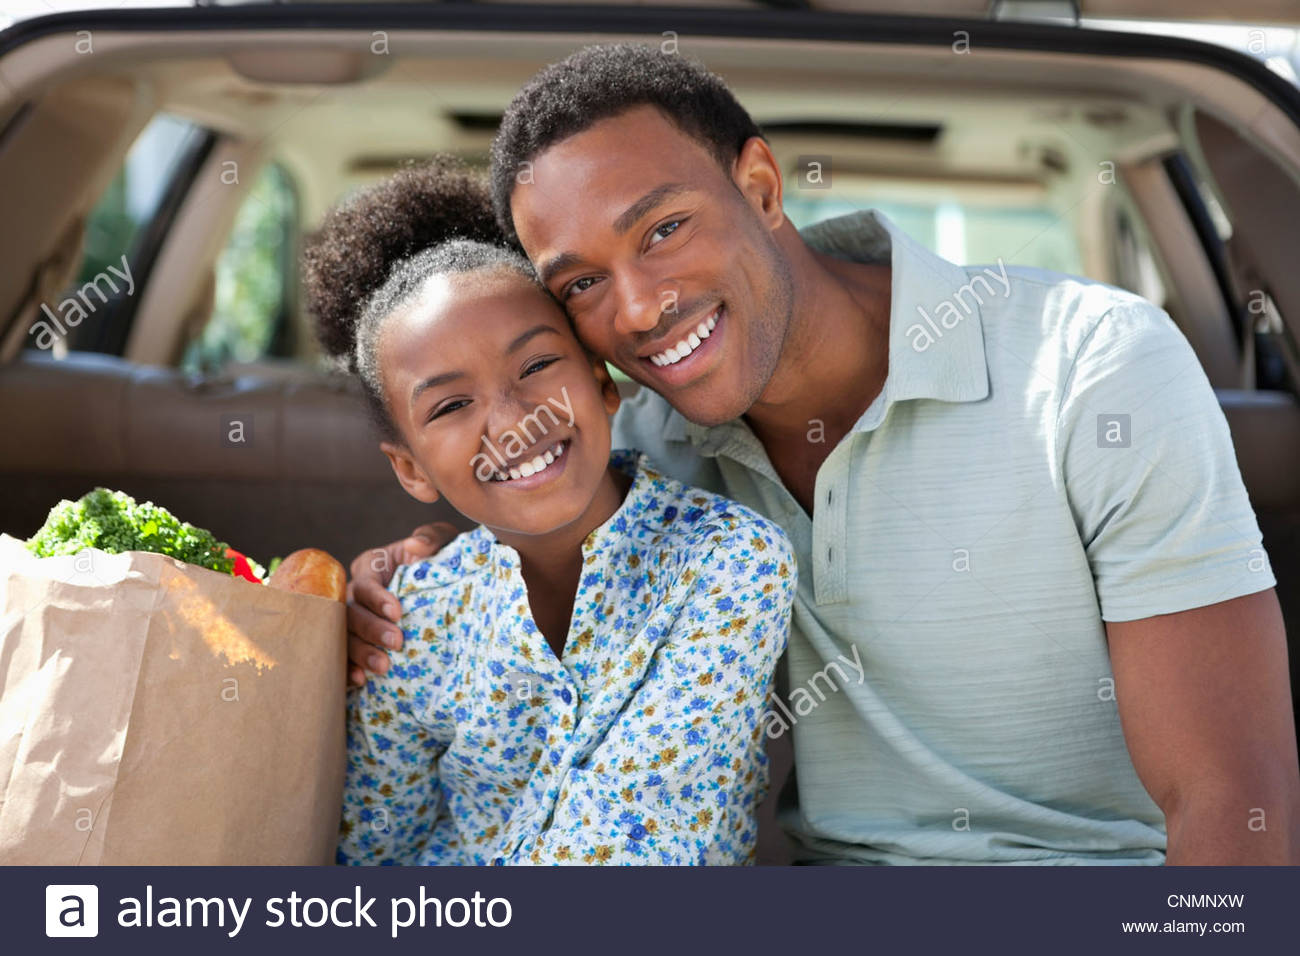 Father and daughter unloading groceries from car - Stock Image